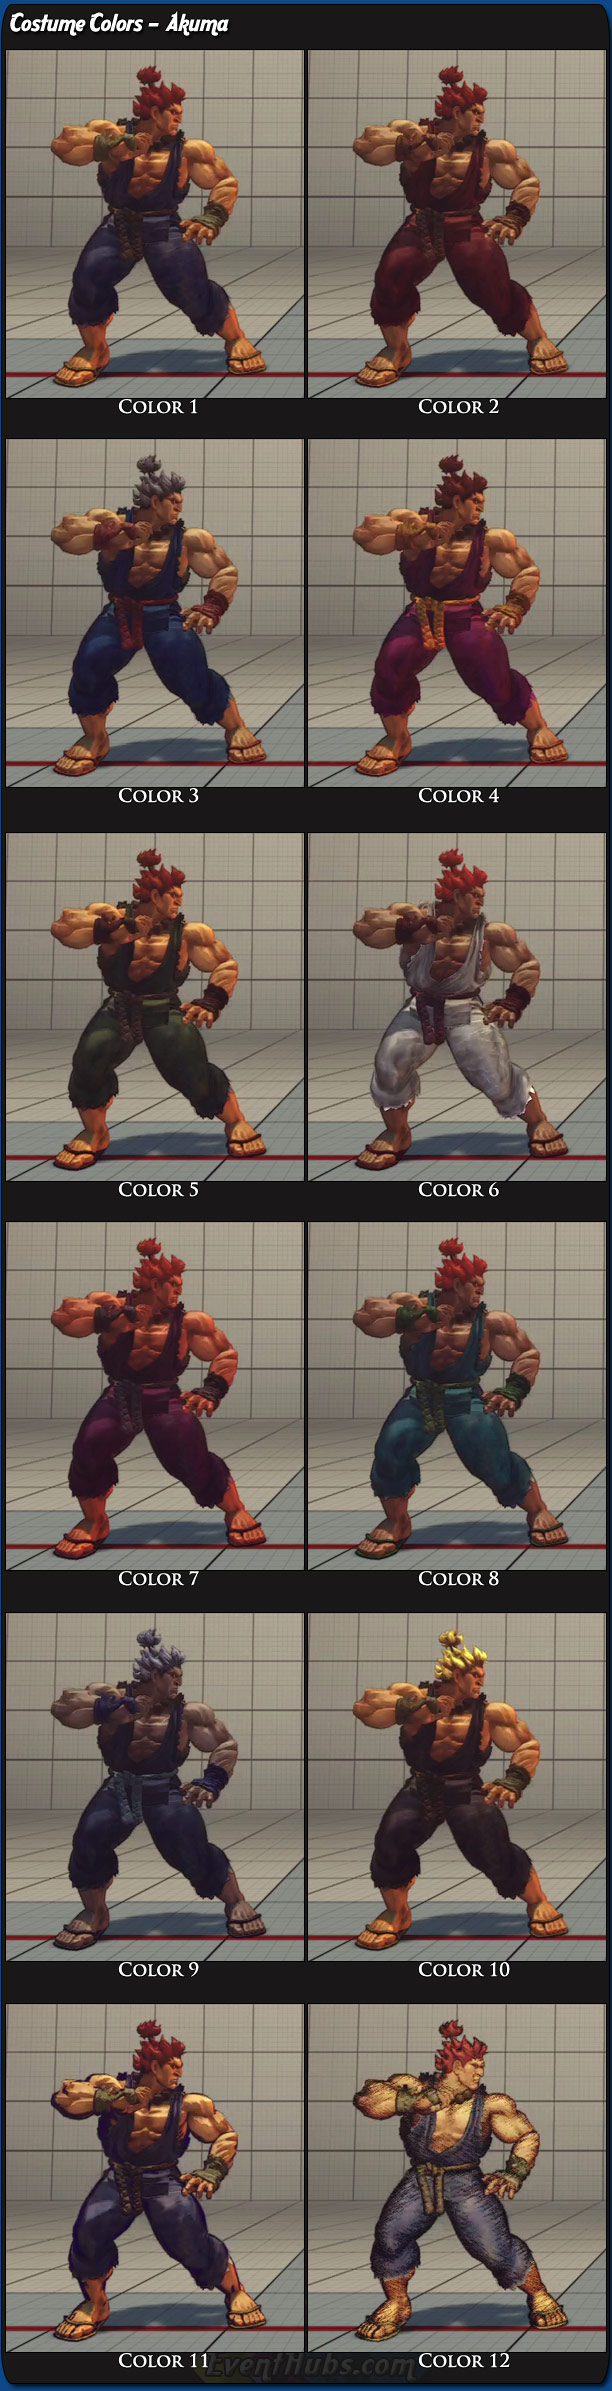 Costume And Alternative Outfit Colors For Akuma Gouki In